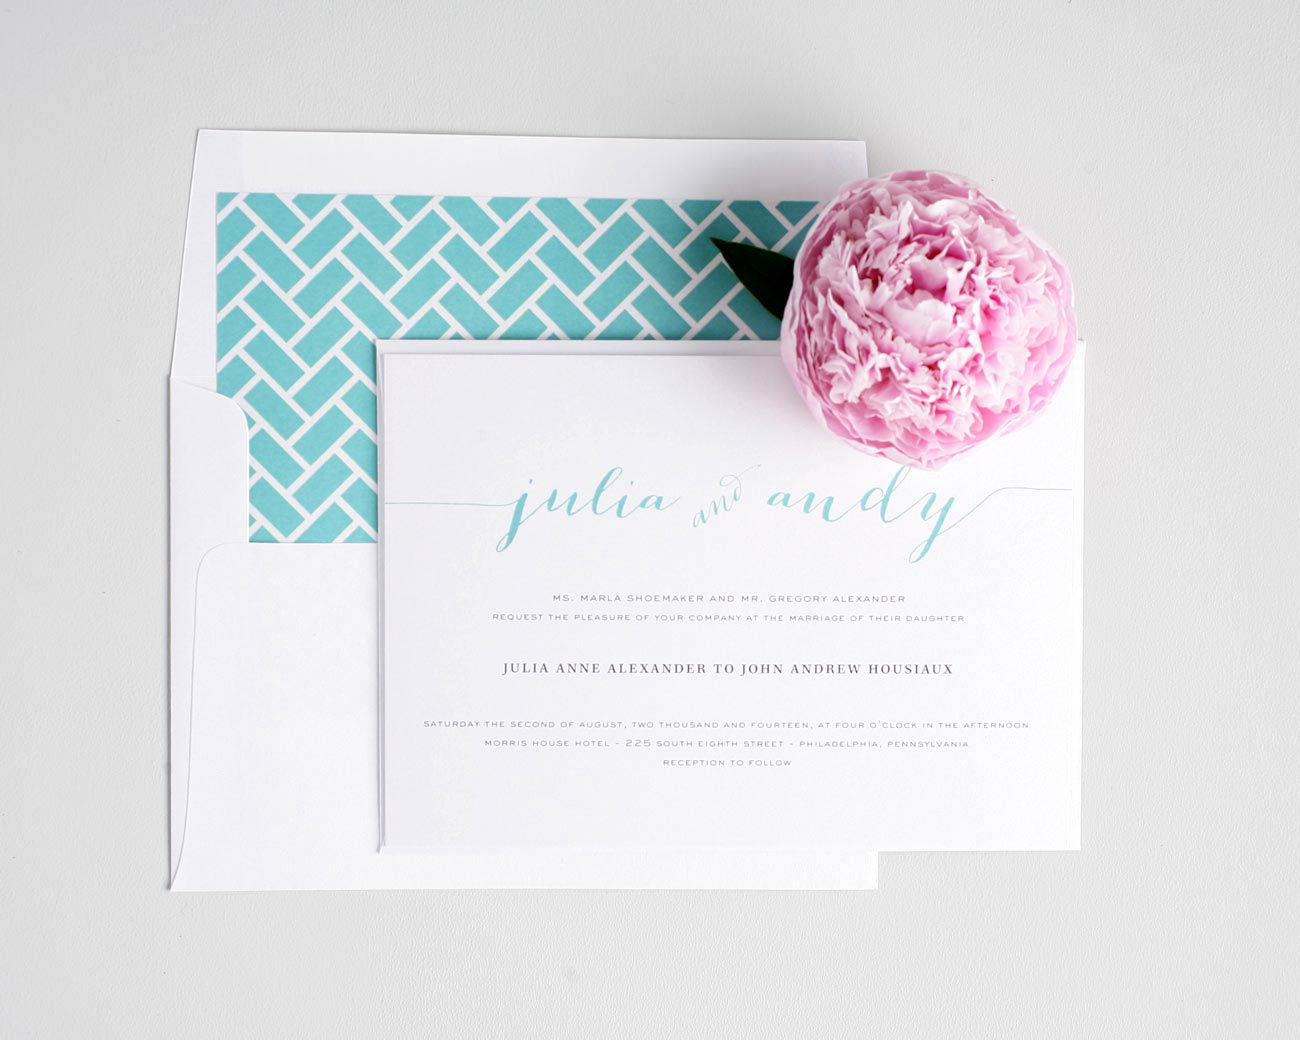 Script wedding invitations in aqua